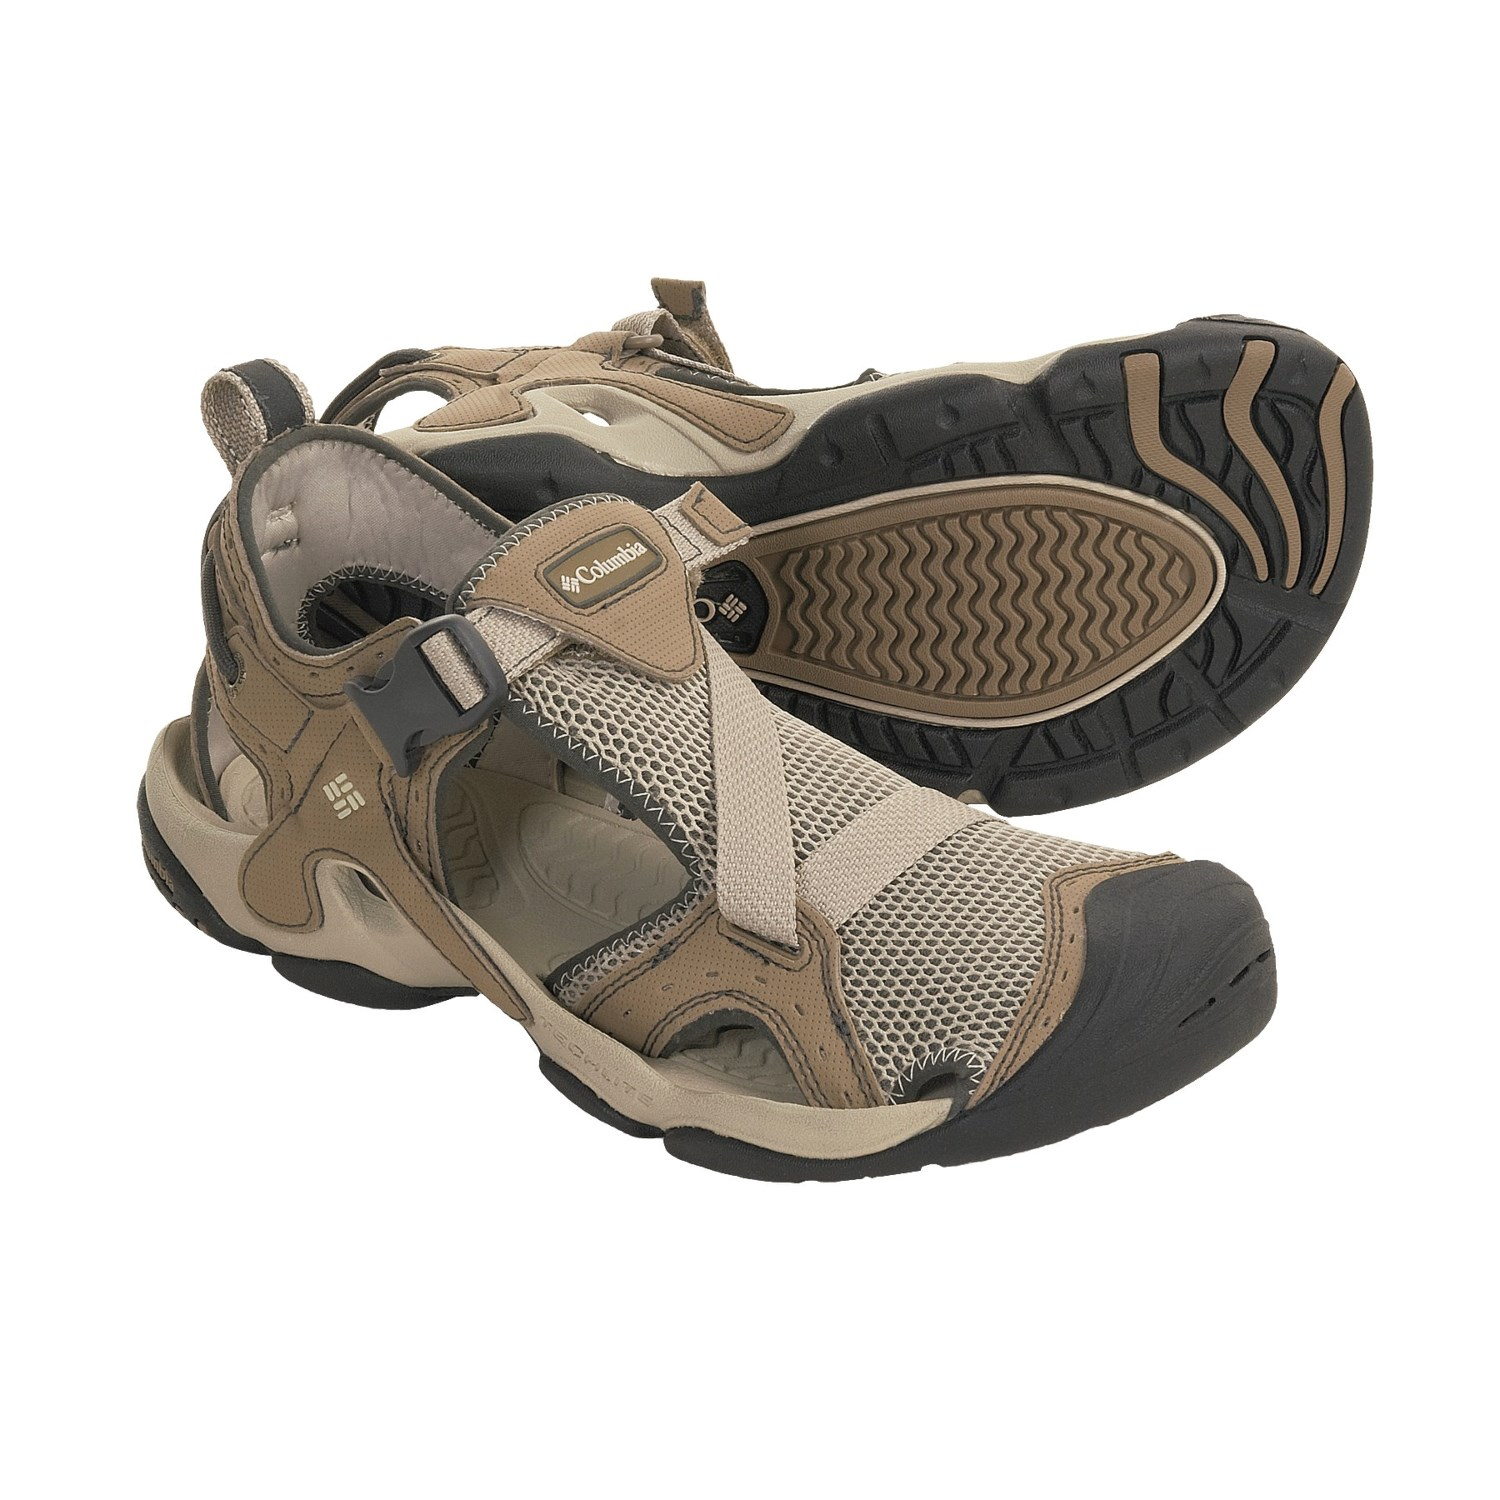 Columbia footwear pfg reel deal sport sandals for men 3065t for Columbia fishing shoes